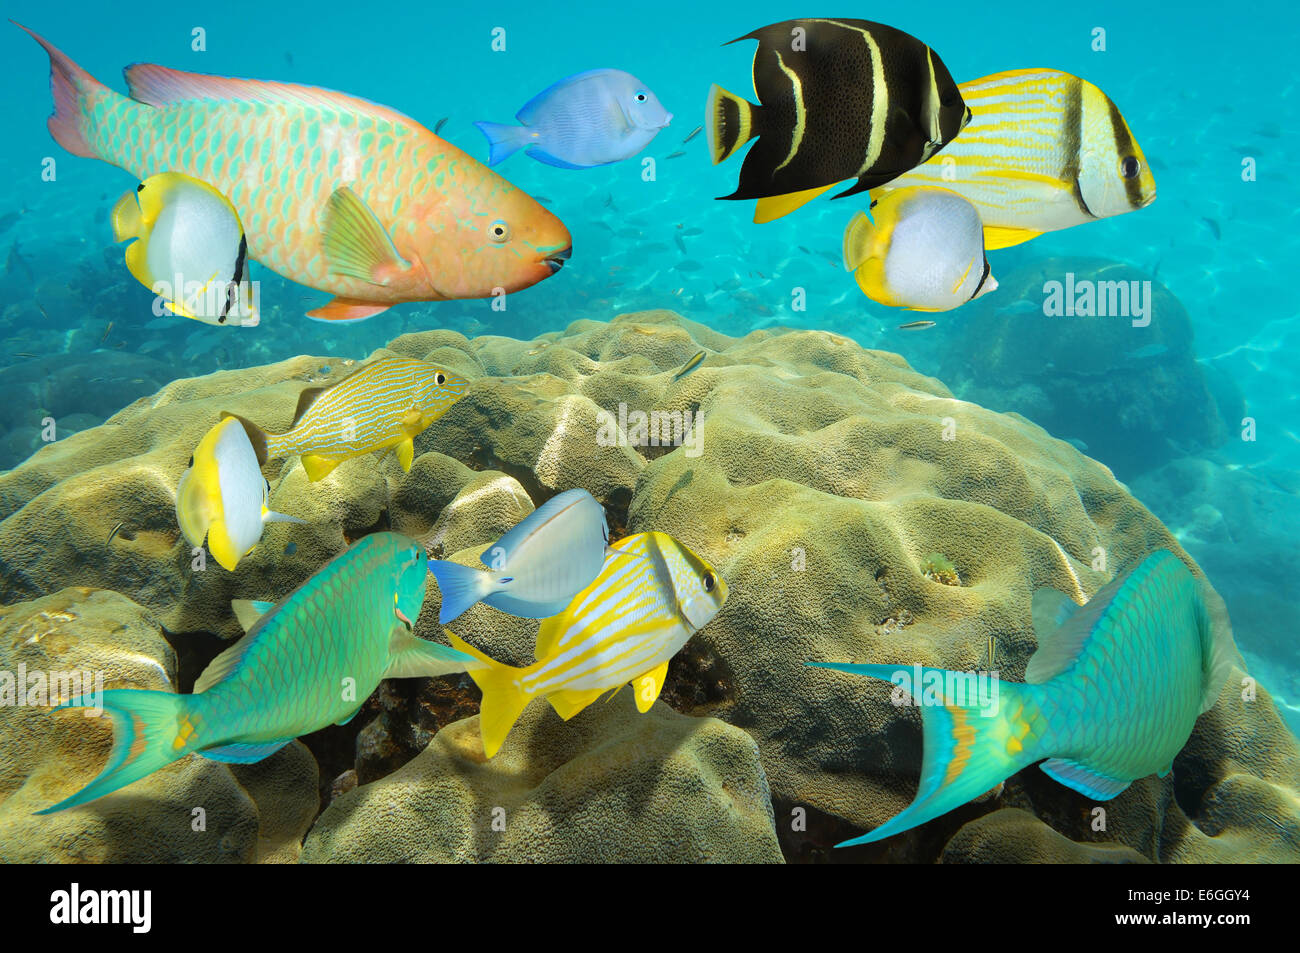 School Colorful Fish In Caribbean Stock Photos & School Colorful ...